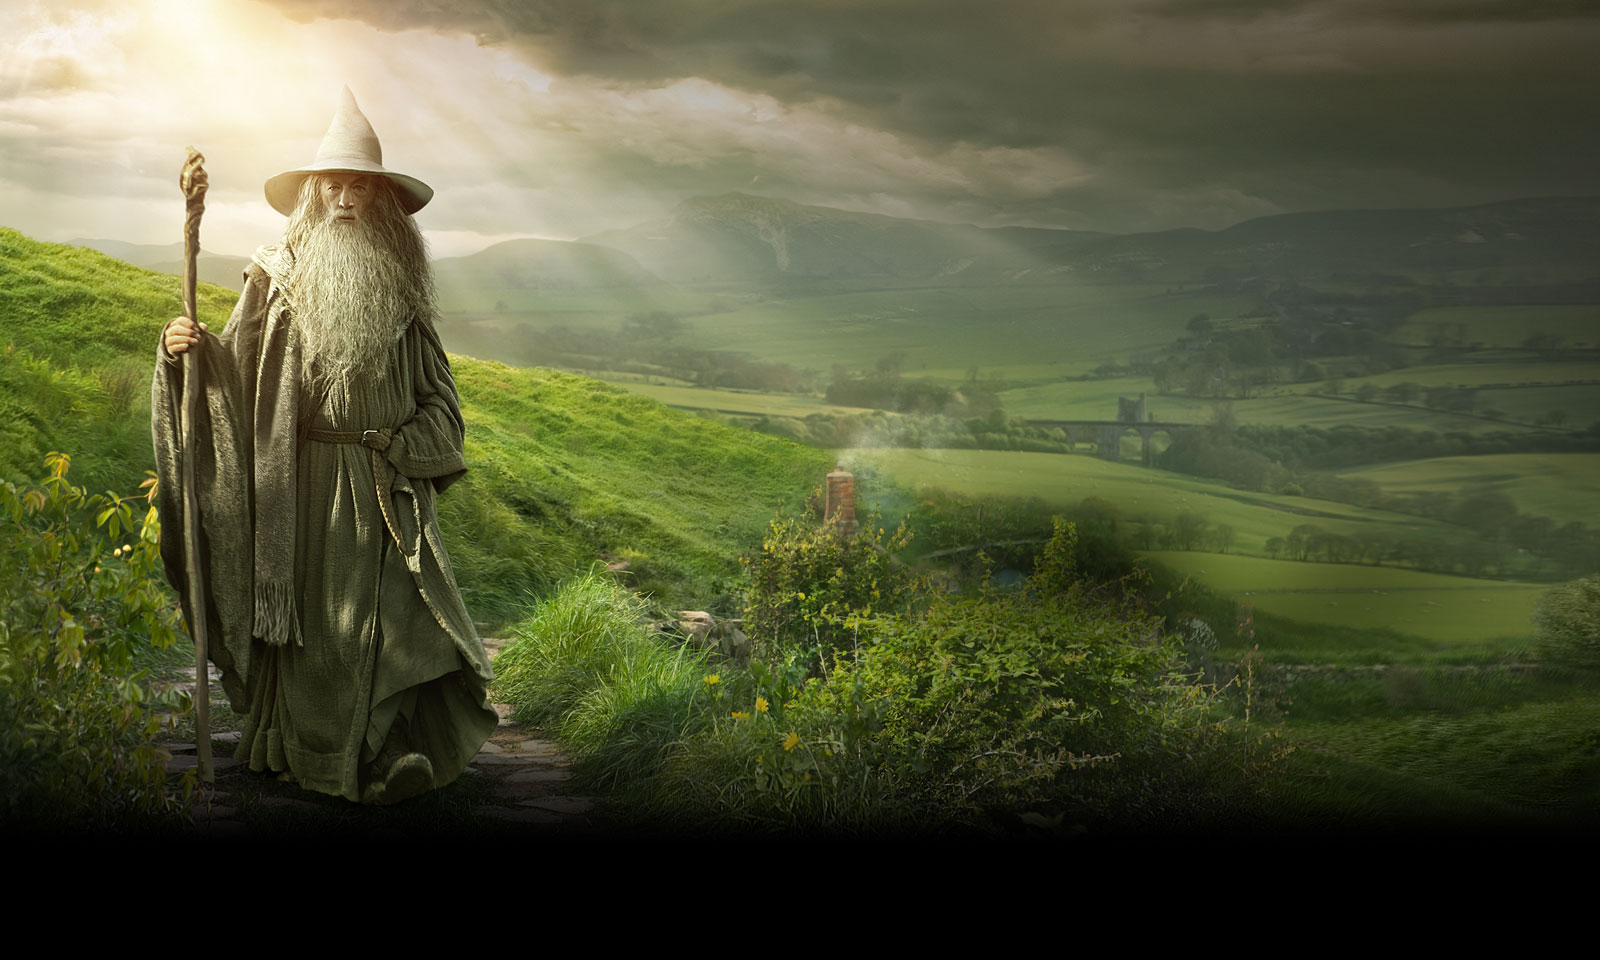 Gandalf in The Shire HD wallpaper 1600x960px from The Hobbit An 1600x960